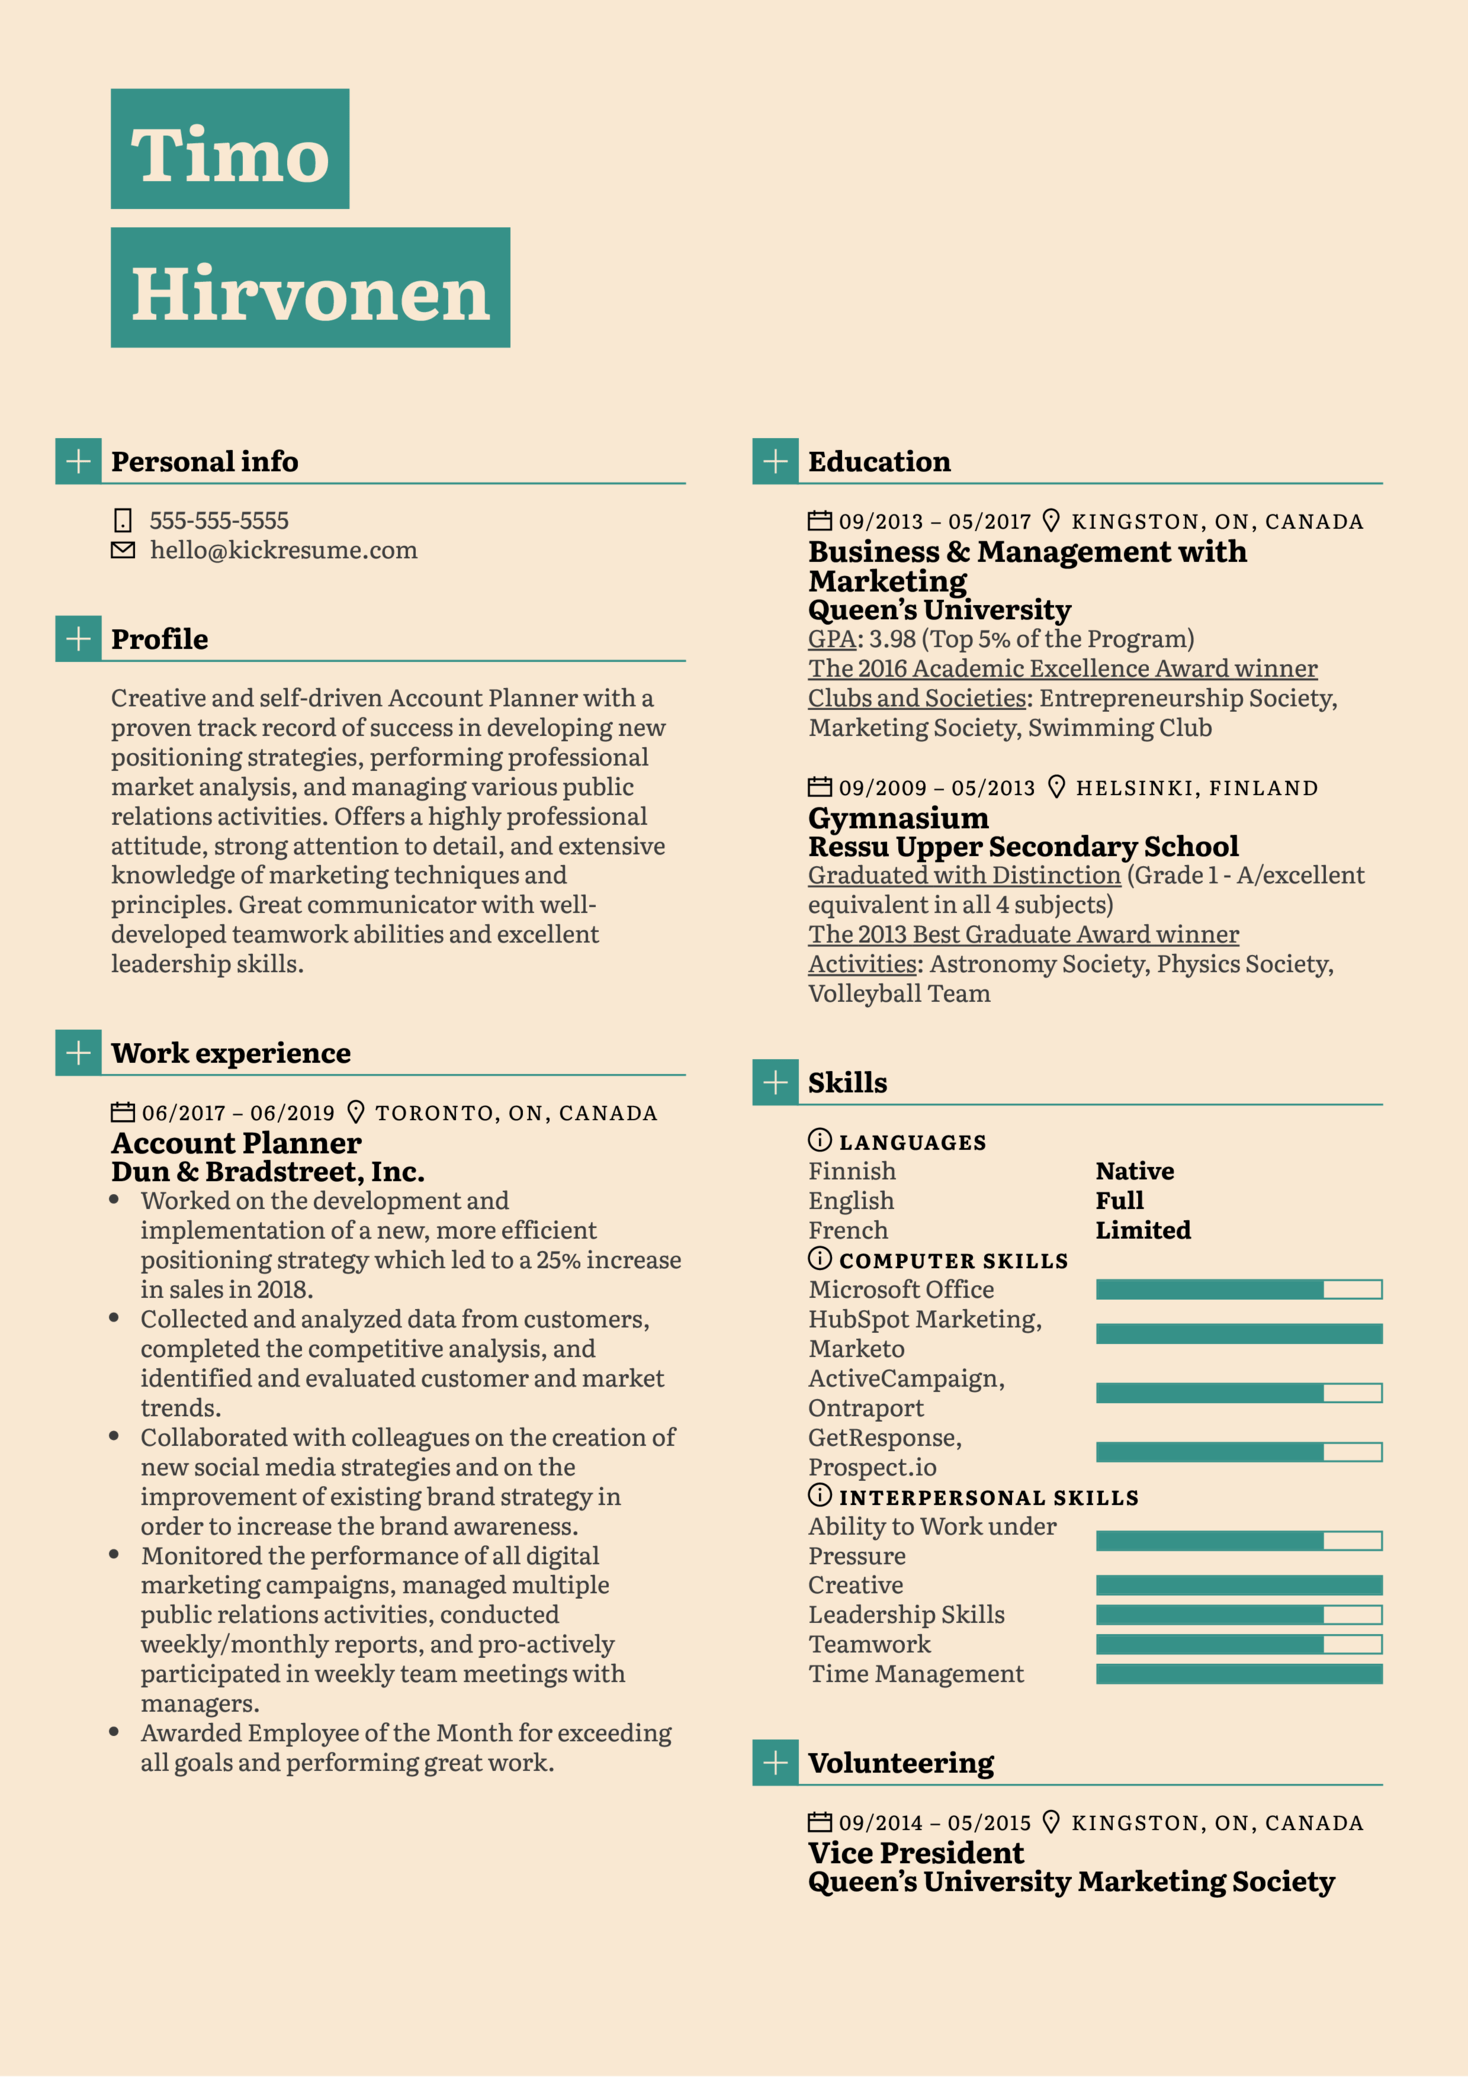 Account Planner Resume Example (parte 1)